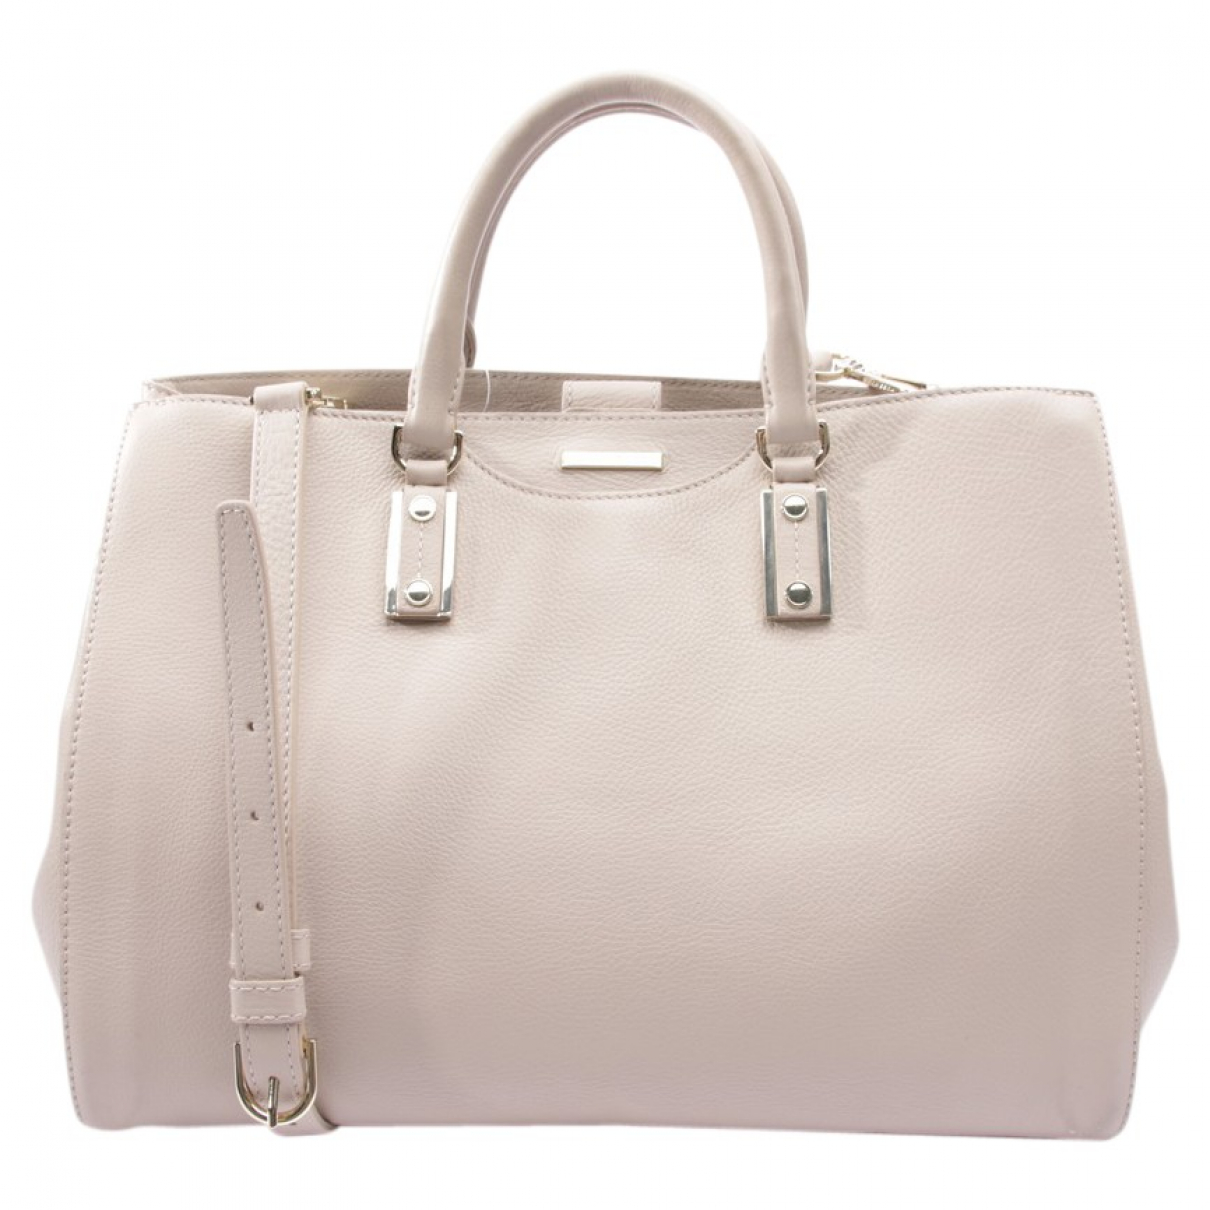 Hugo Boss \N Beige Leather handbag for Women \N